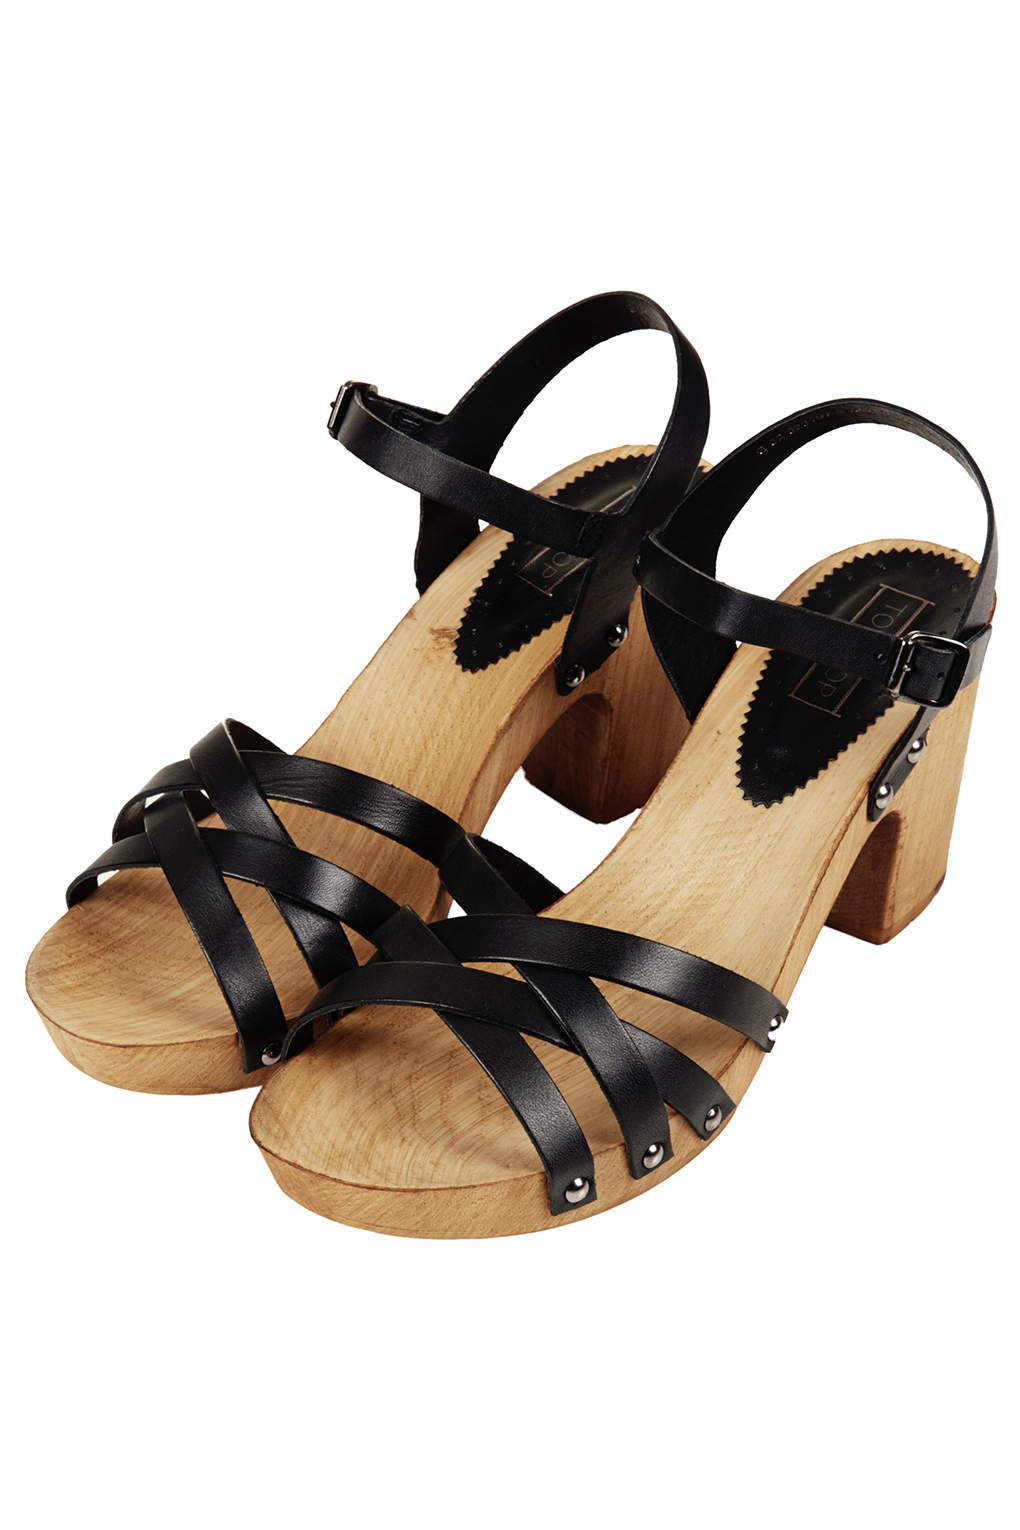 08fd8a93c6d Lyst - TOPSHOP Nancy Chunky Wooden Sandals in Black